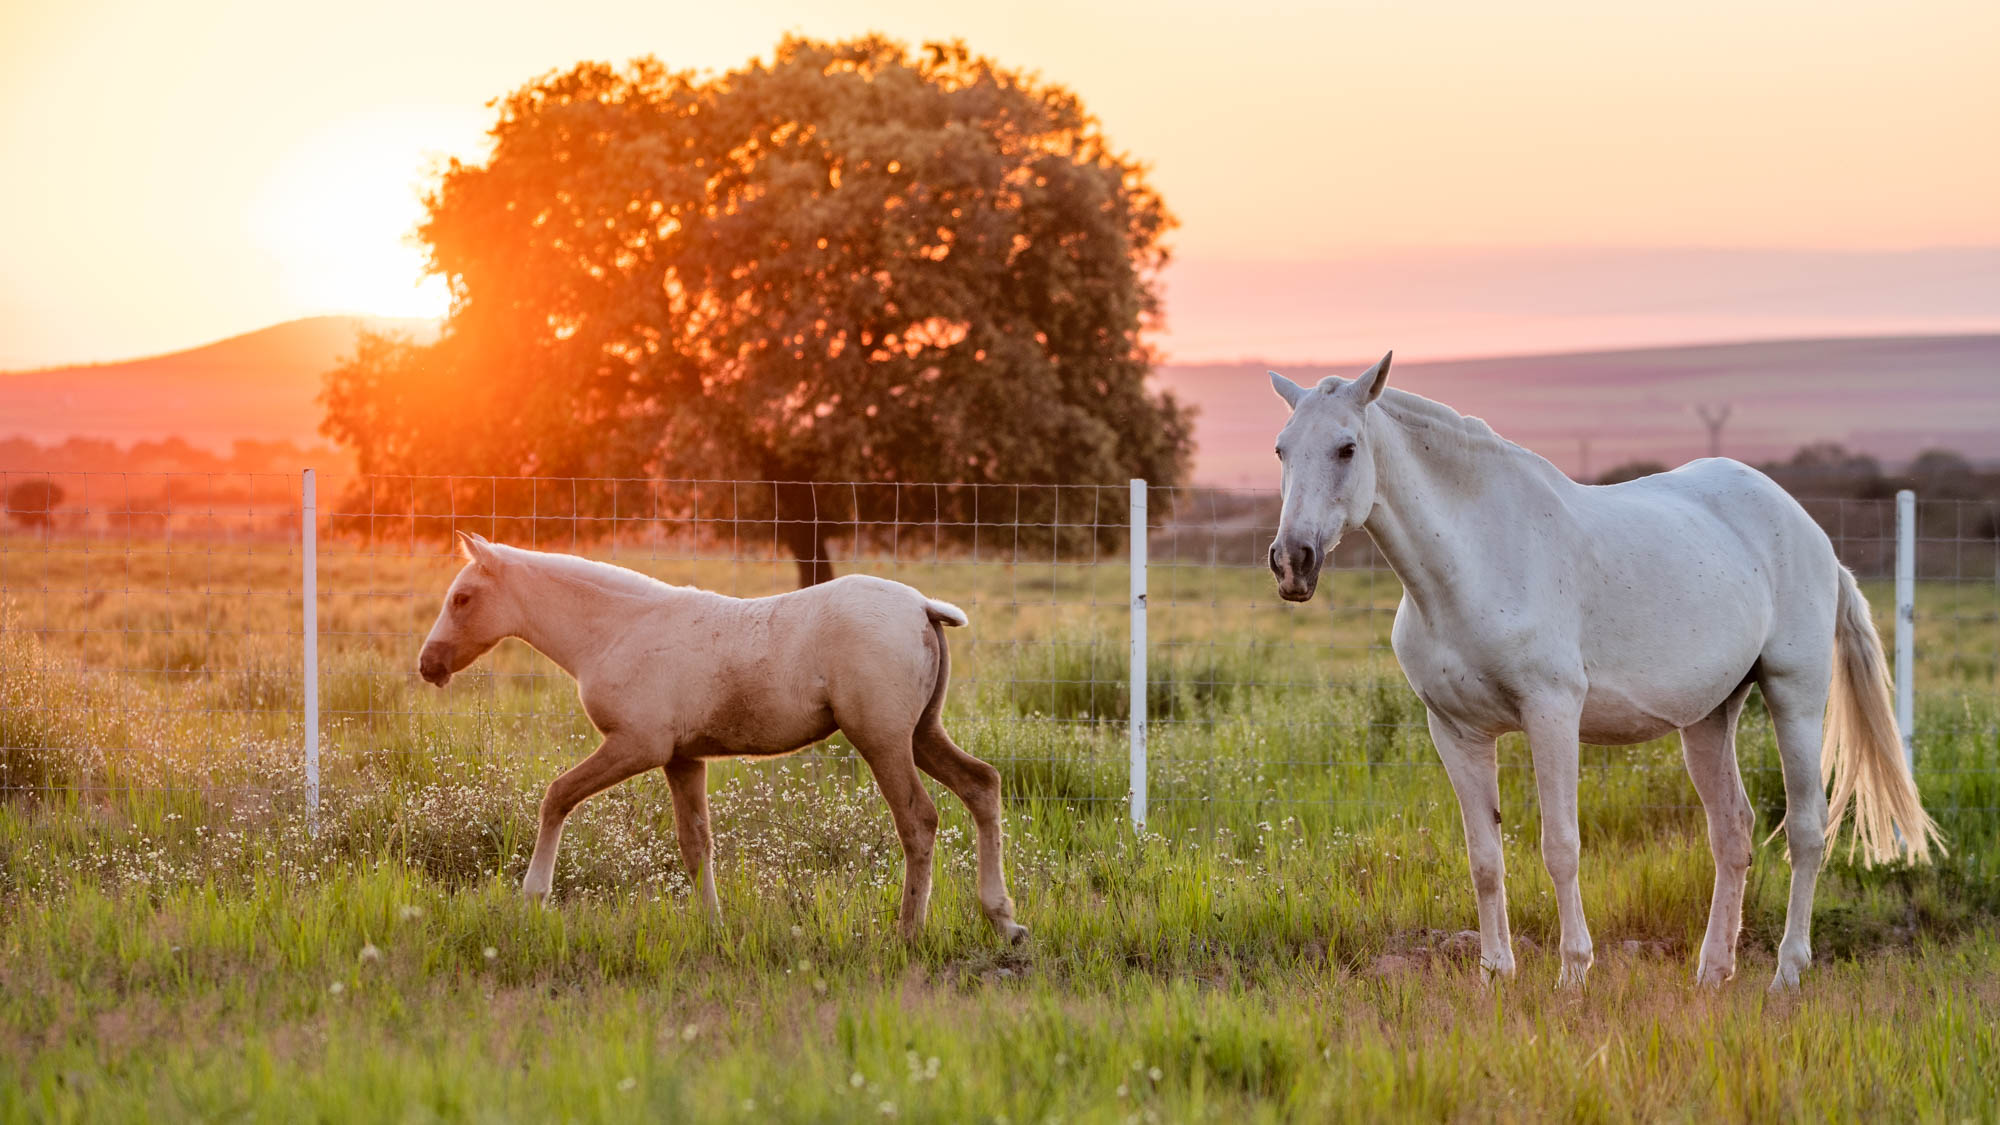 White Mare horse with her foal on the grass at sunset